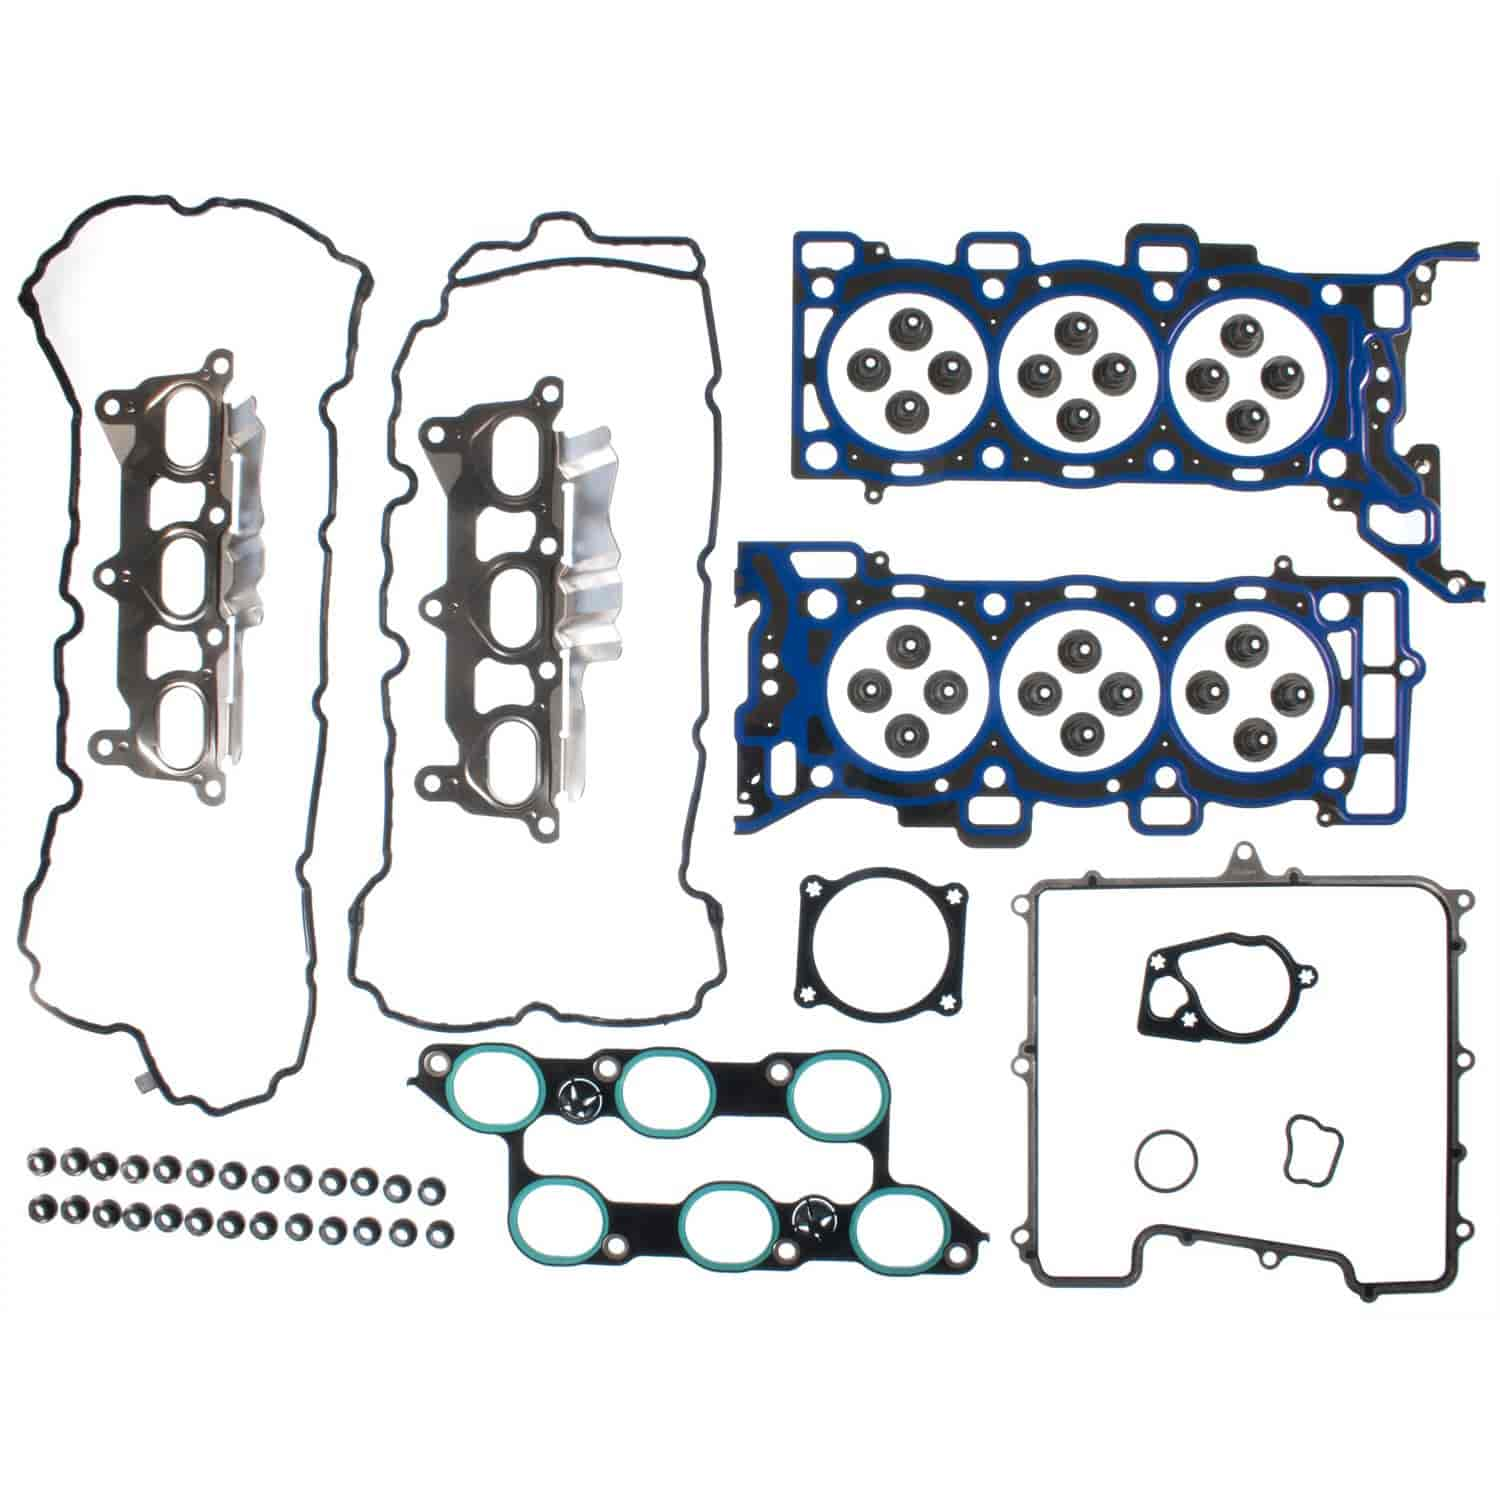 1996 Gmc Safari Cargo Head Gasket: Clevite MAHLE HS54661G: Head Gasket Set 2009-2013 GM V6 3